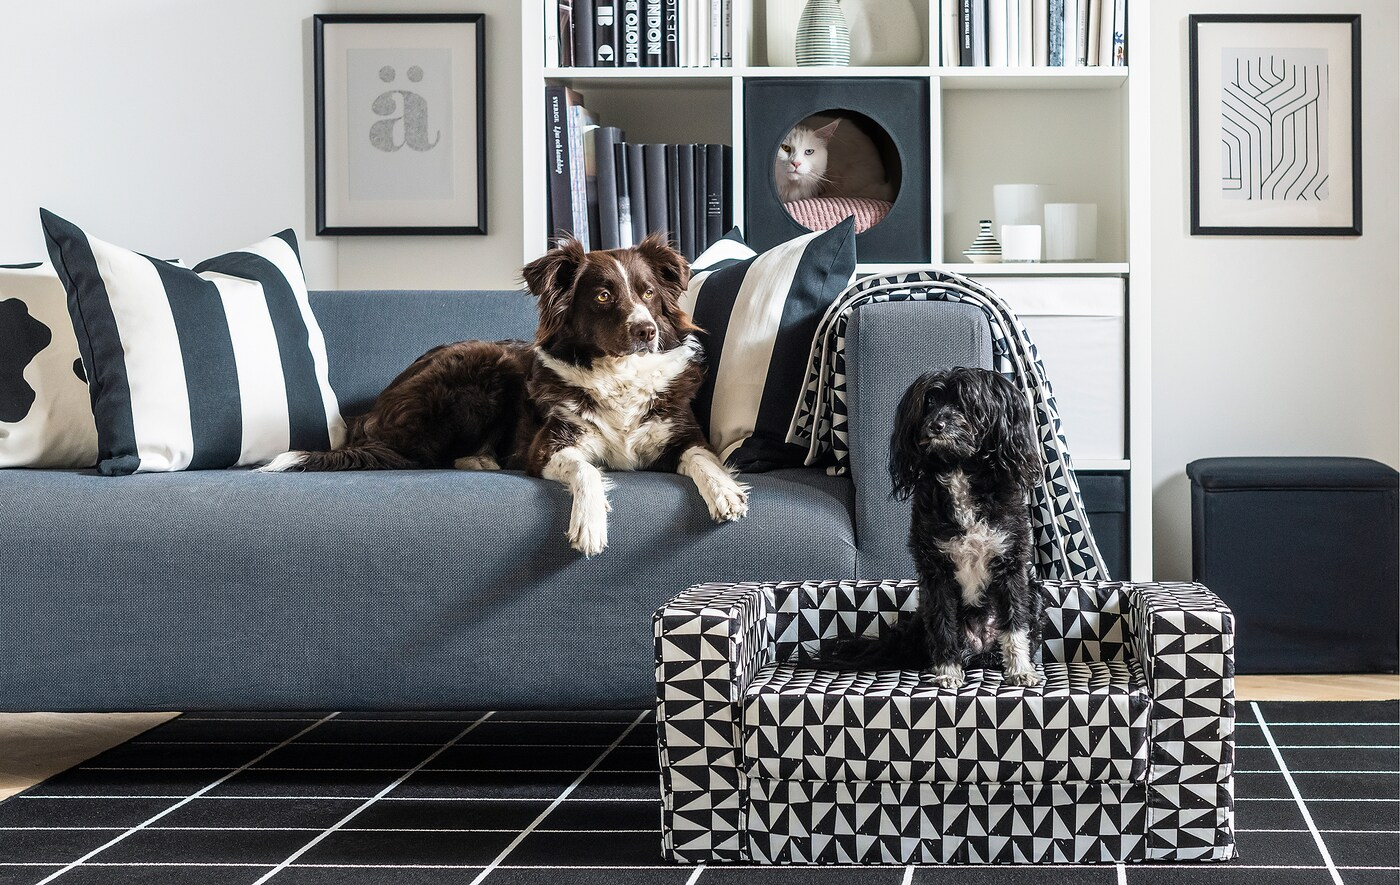 Link to IDEAS blog 'A better everyday life for the many - pets' - image of a living room with two dogs and a cat lounging in style.